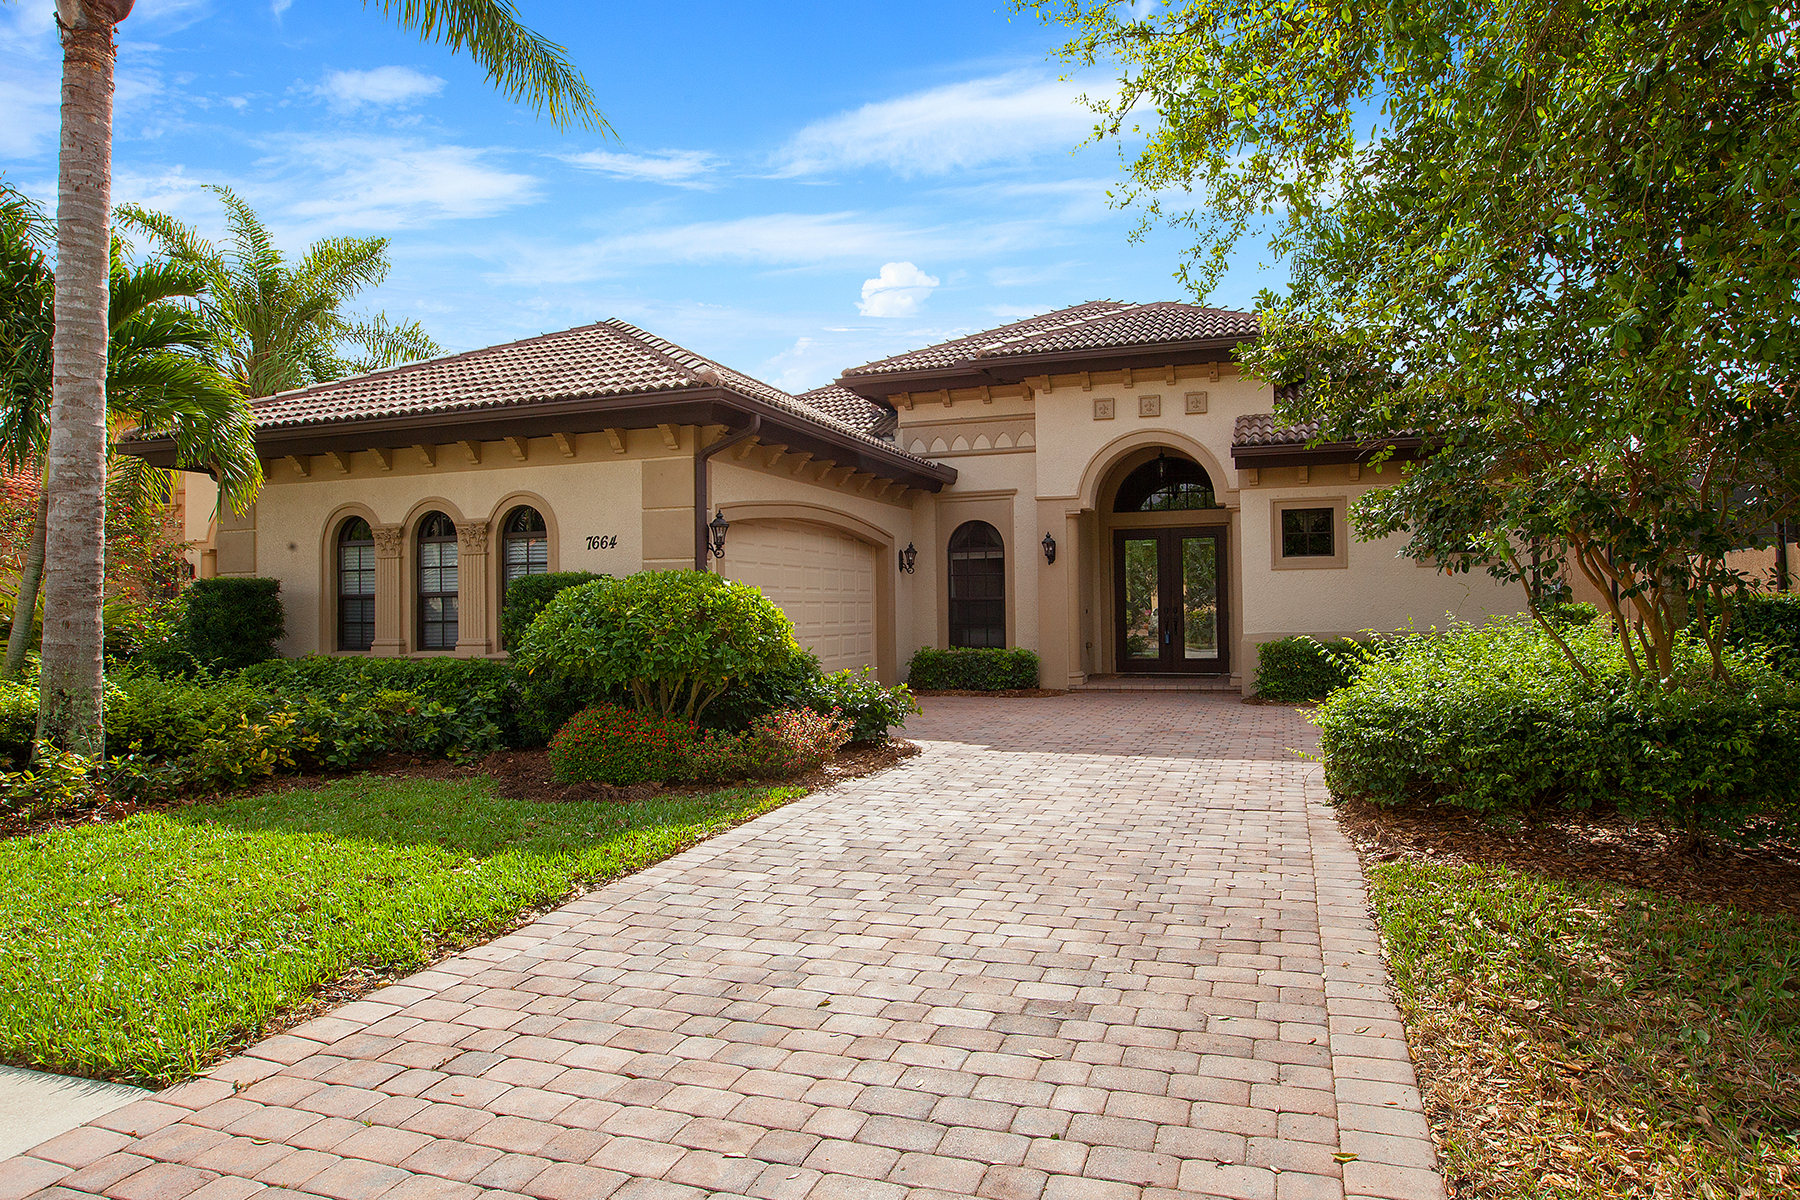 Single Family Home for Sale at LELY RESORT - LELY RESORT 7664 Sussex Ct Naples, Florida, 34113 United States